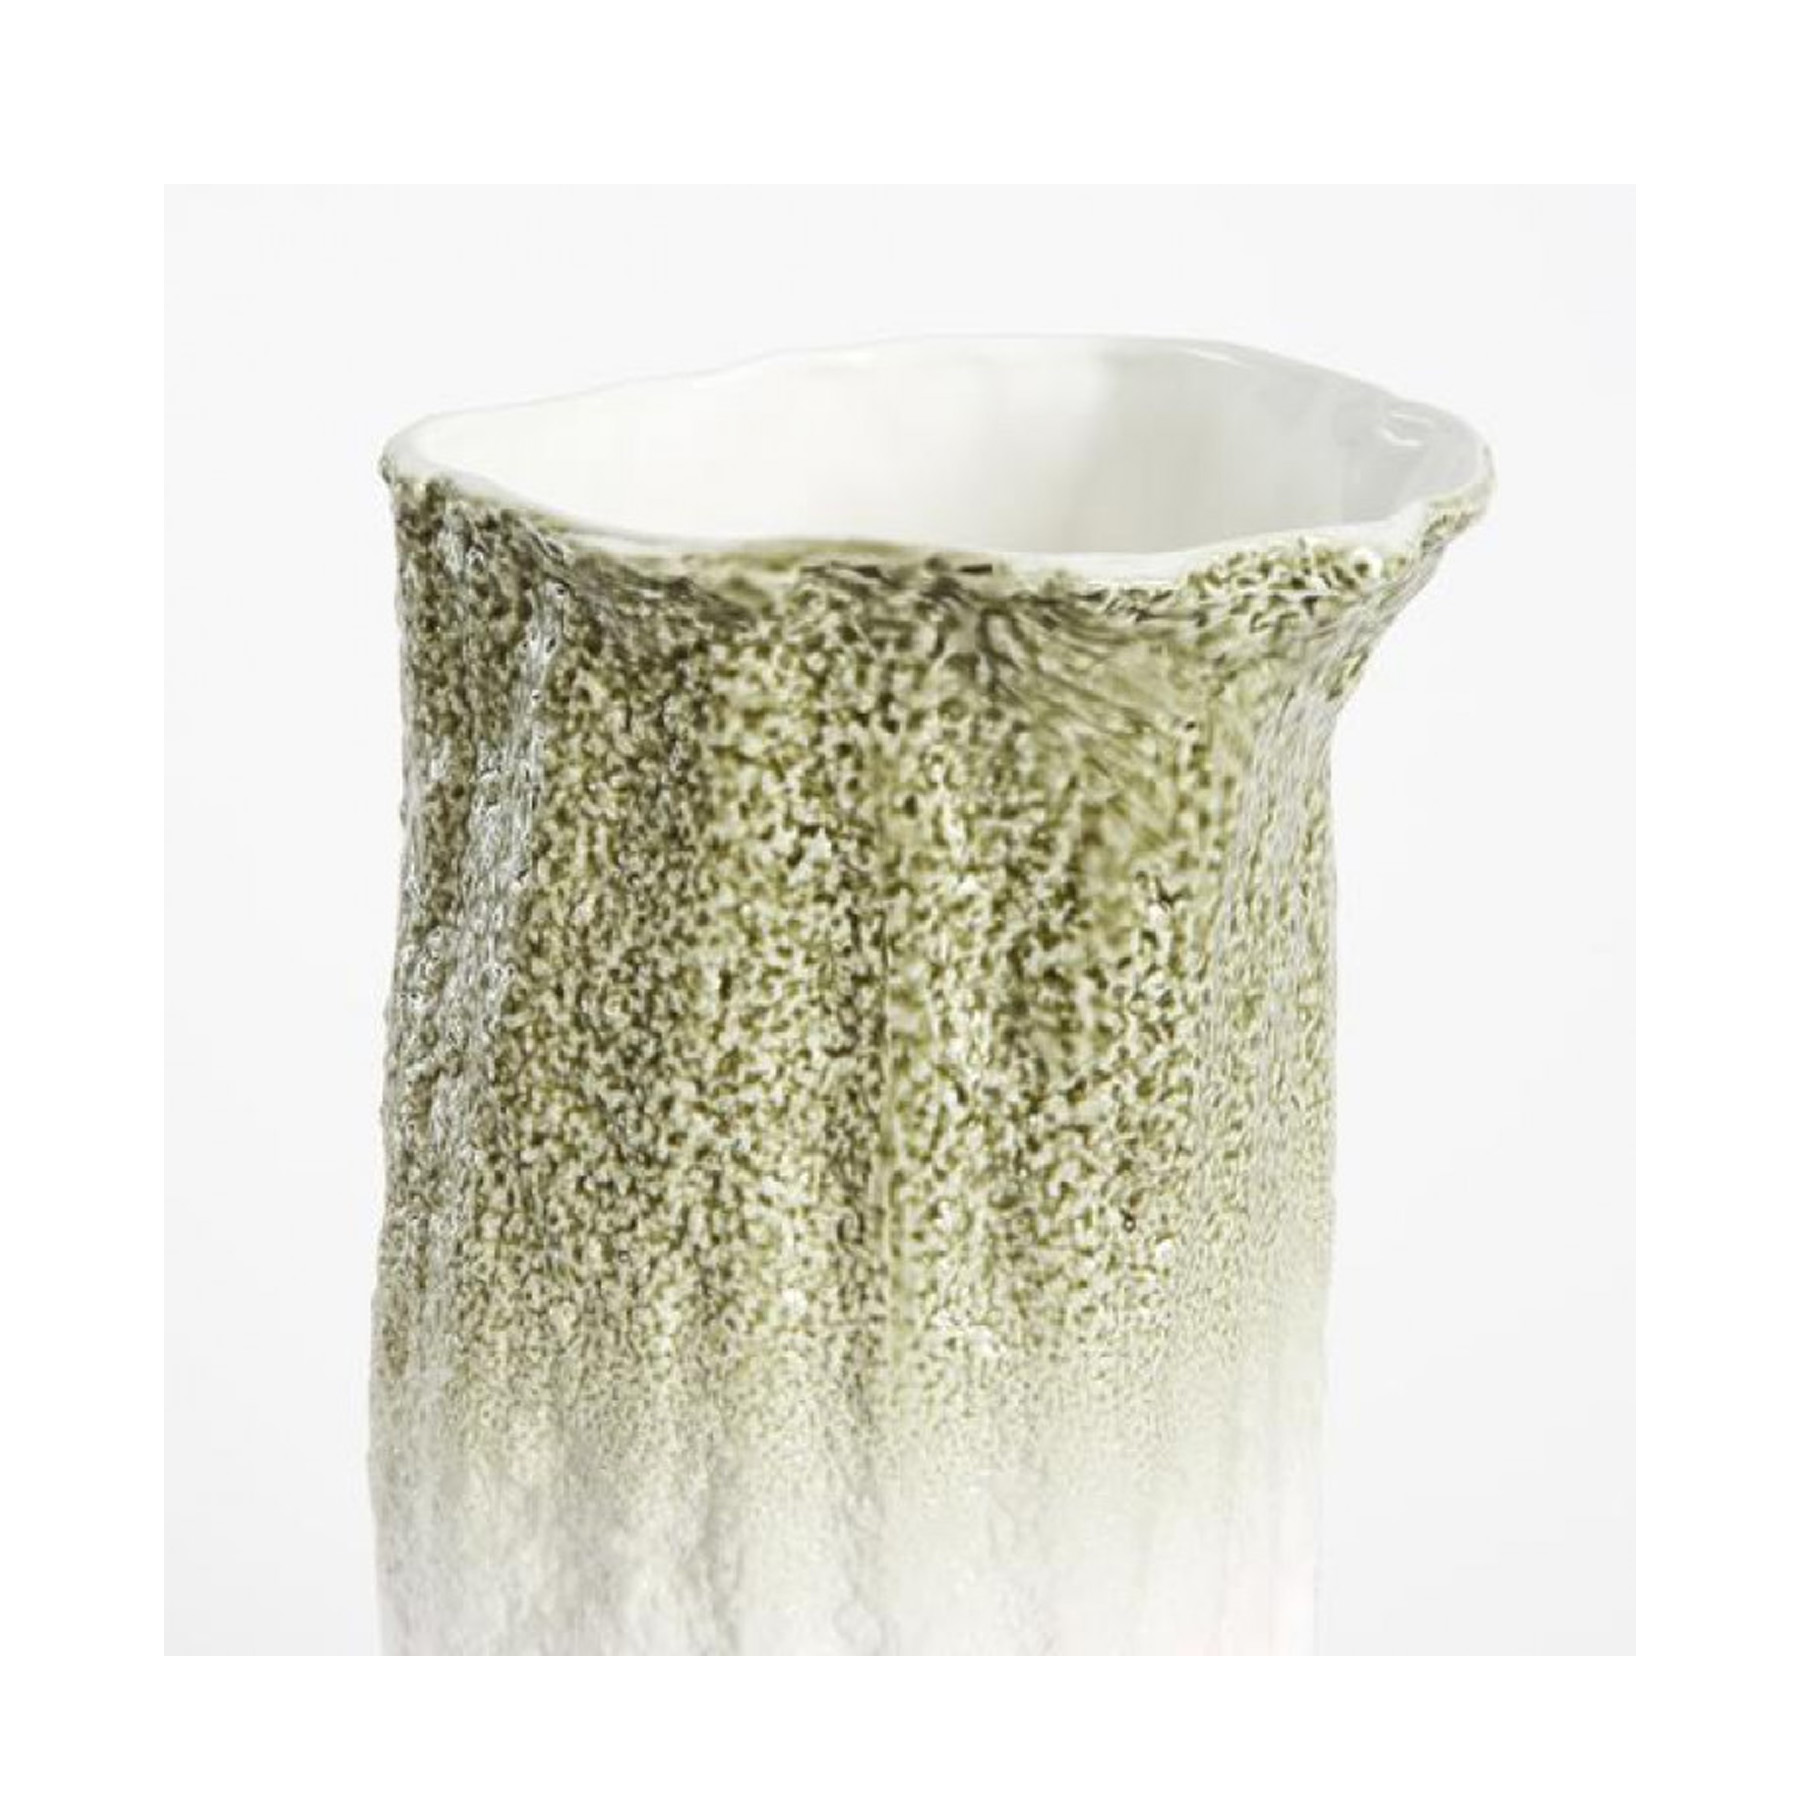 Stegreif Vase Green - Stegreif Vases, a collaboration with Johannes Nagel, is a collection of vases that focuses on the impromptu and spontaneous character of the pieces, including their repetition. Each piece is made from fine bone china with coloured glaze applied by hand, making each vase original whilst running along the same design directive. Made in England. Hand wash only.   Matter of Stuff